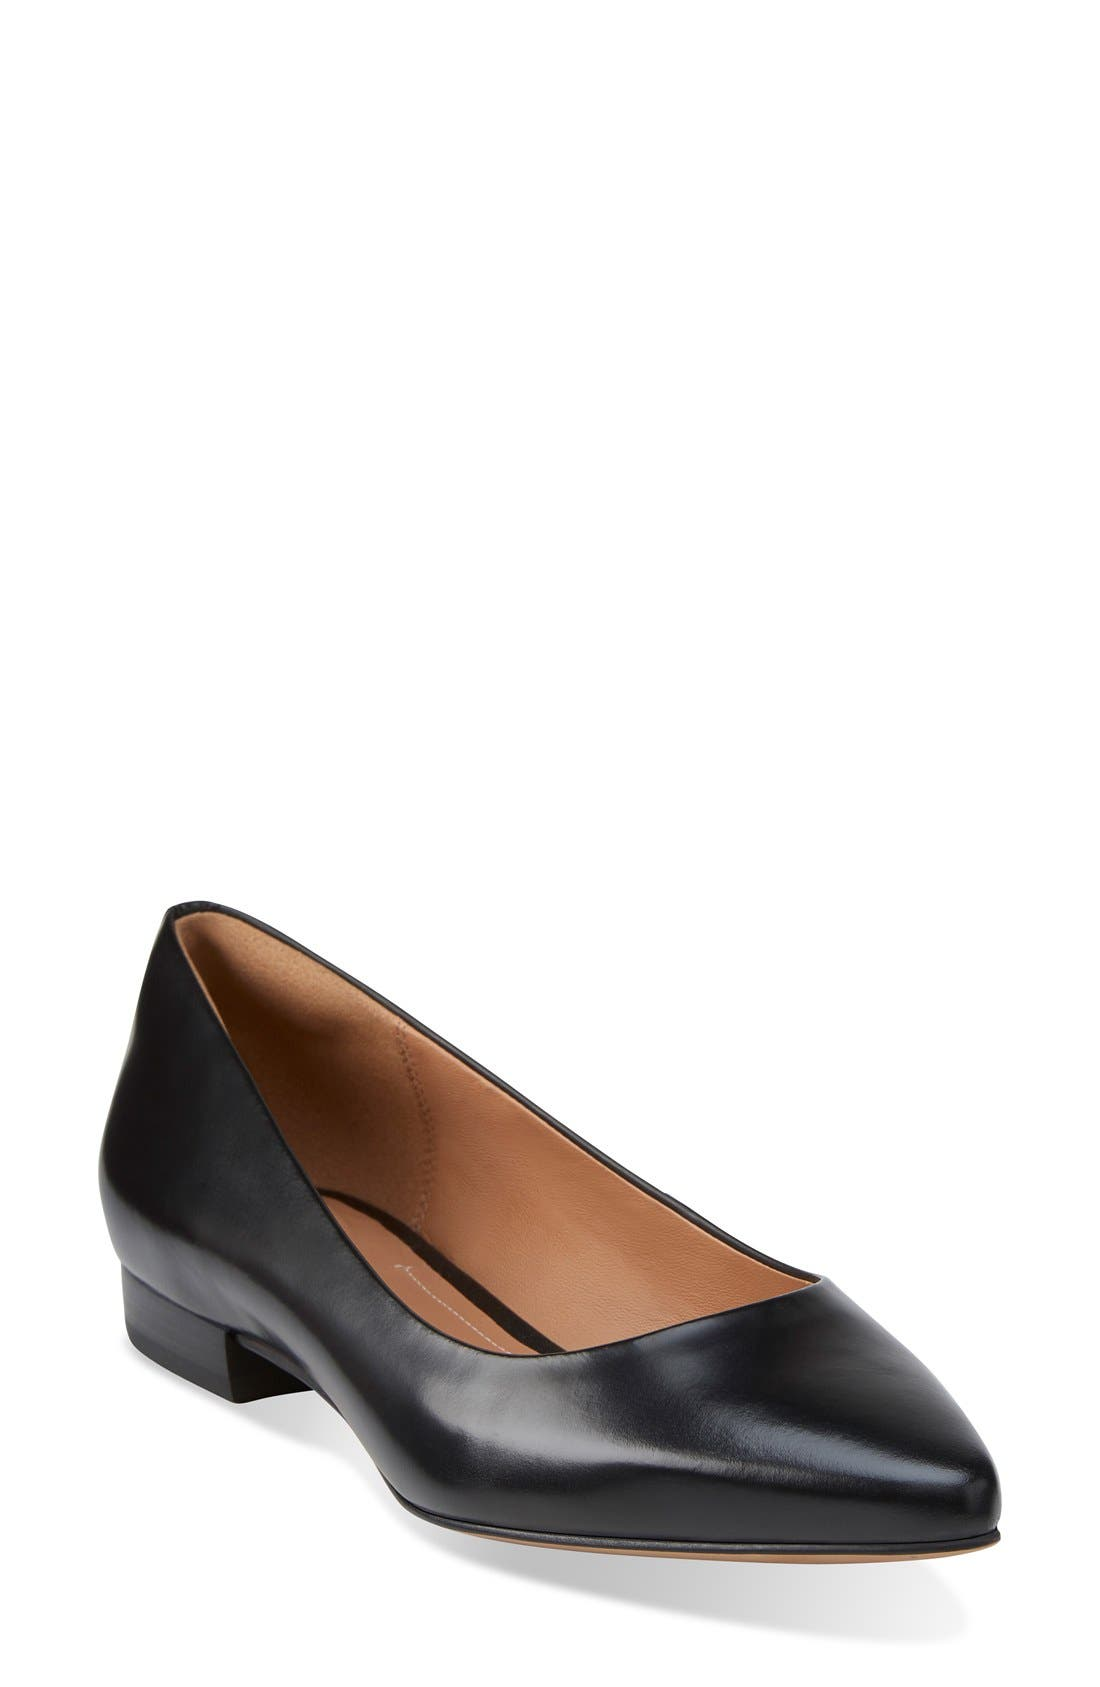 CLARKS<SUP>®</SUP> 'Corabeth Abby' Pointy Toe Flat, Main, color, 003